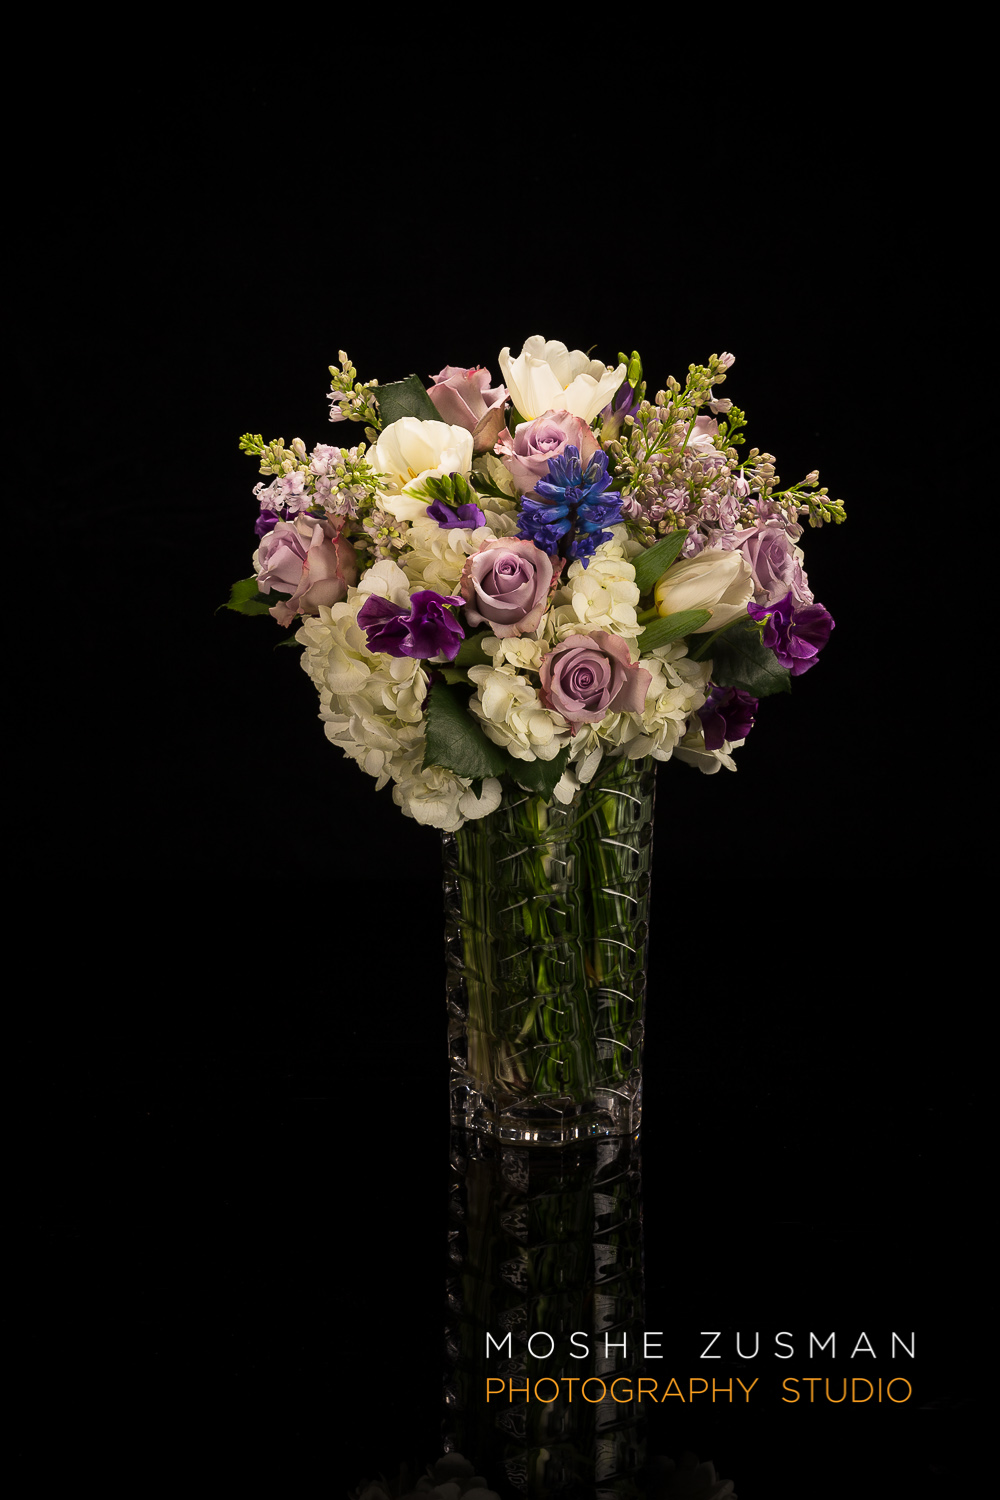 May_Flowers_Reston_Moshe_Zusman_Photography_Valentines_Flowers-05.jpg